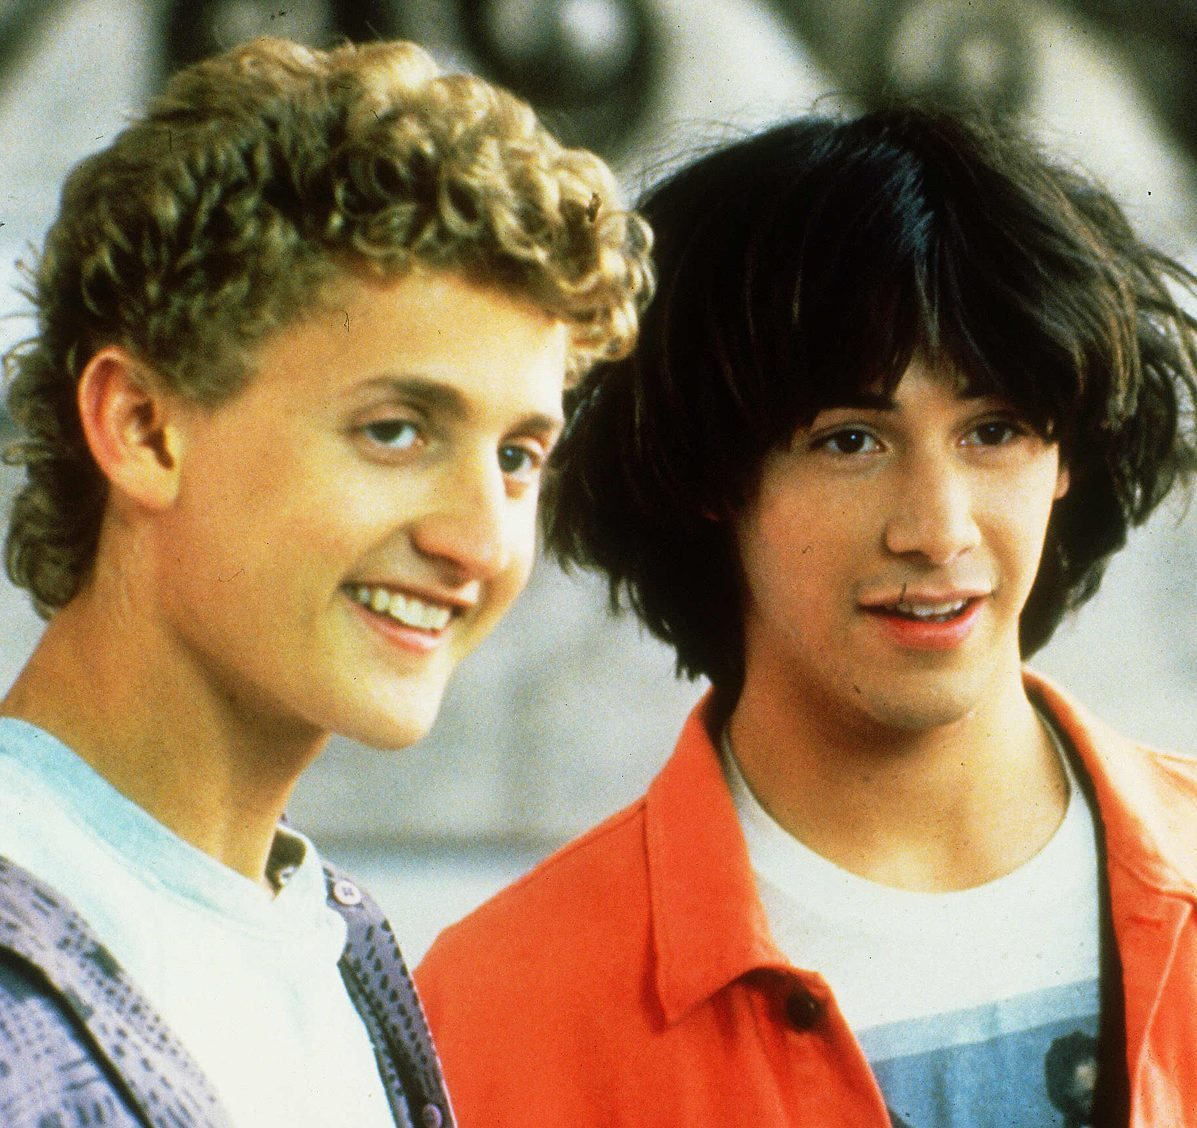 5882114aW e1616579769965 25 Totally Non-Heinous Facts About Bill & Ted's Excellent Adventure!